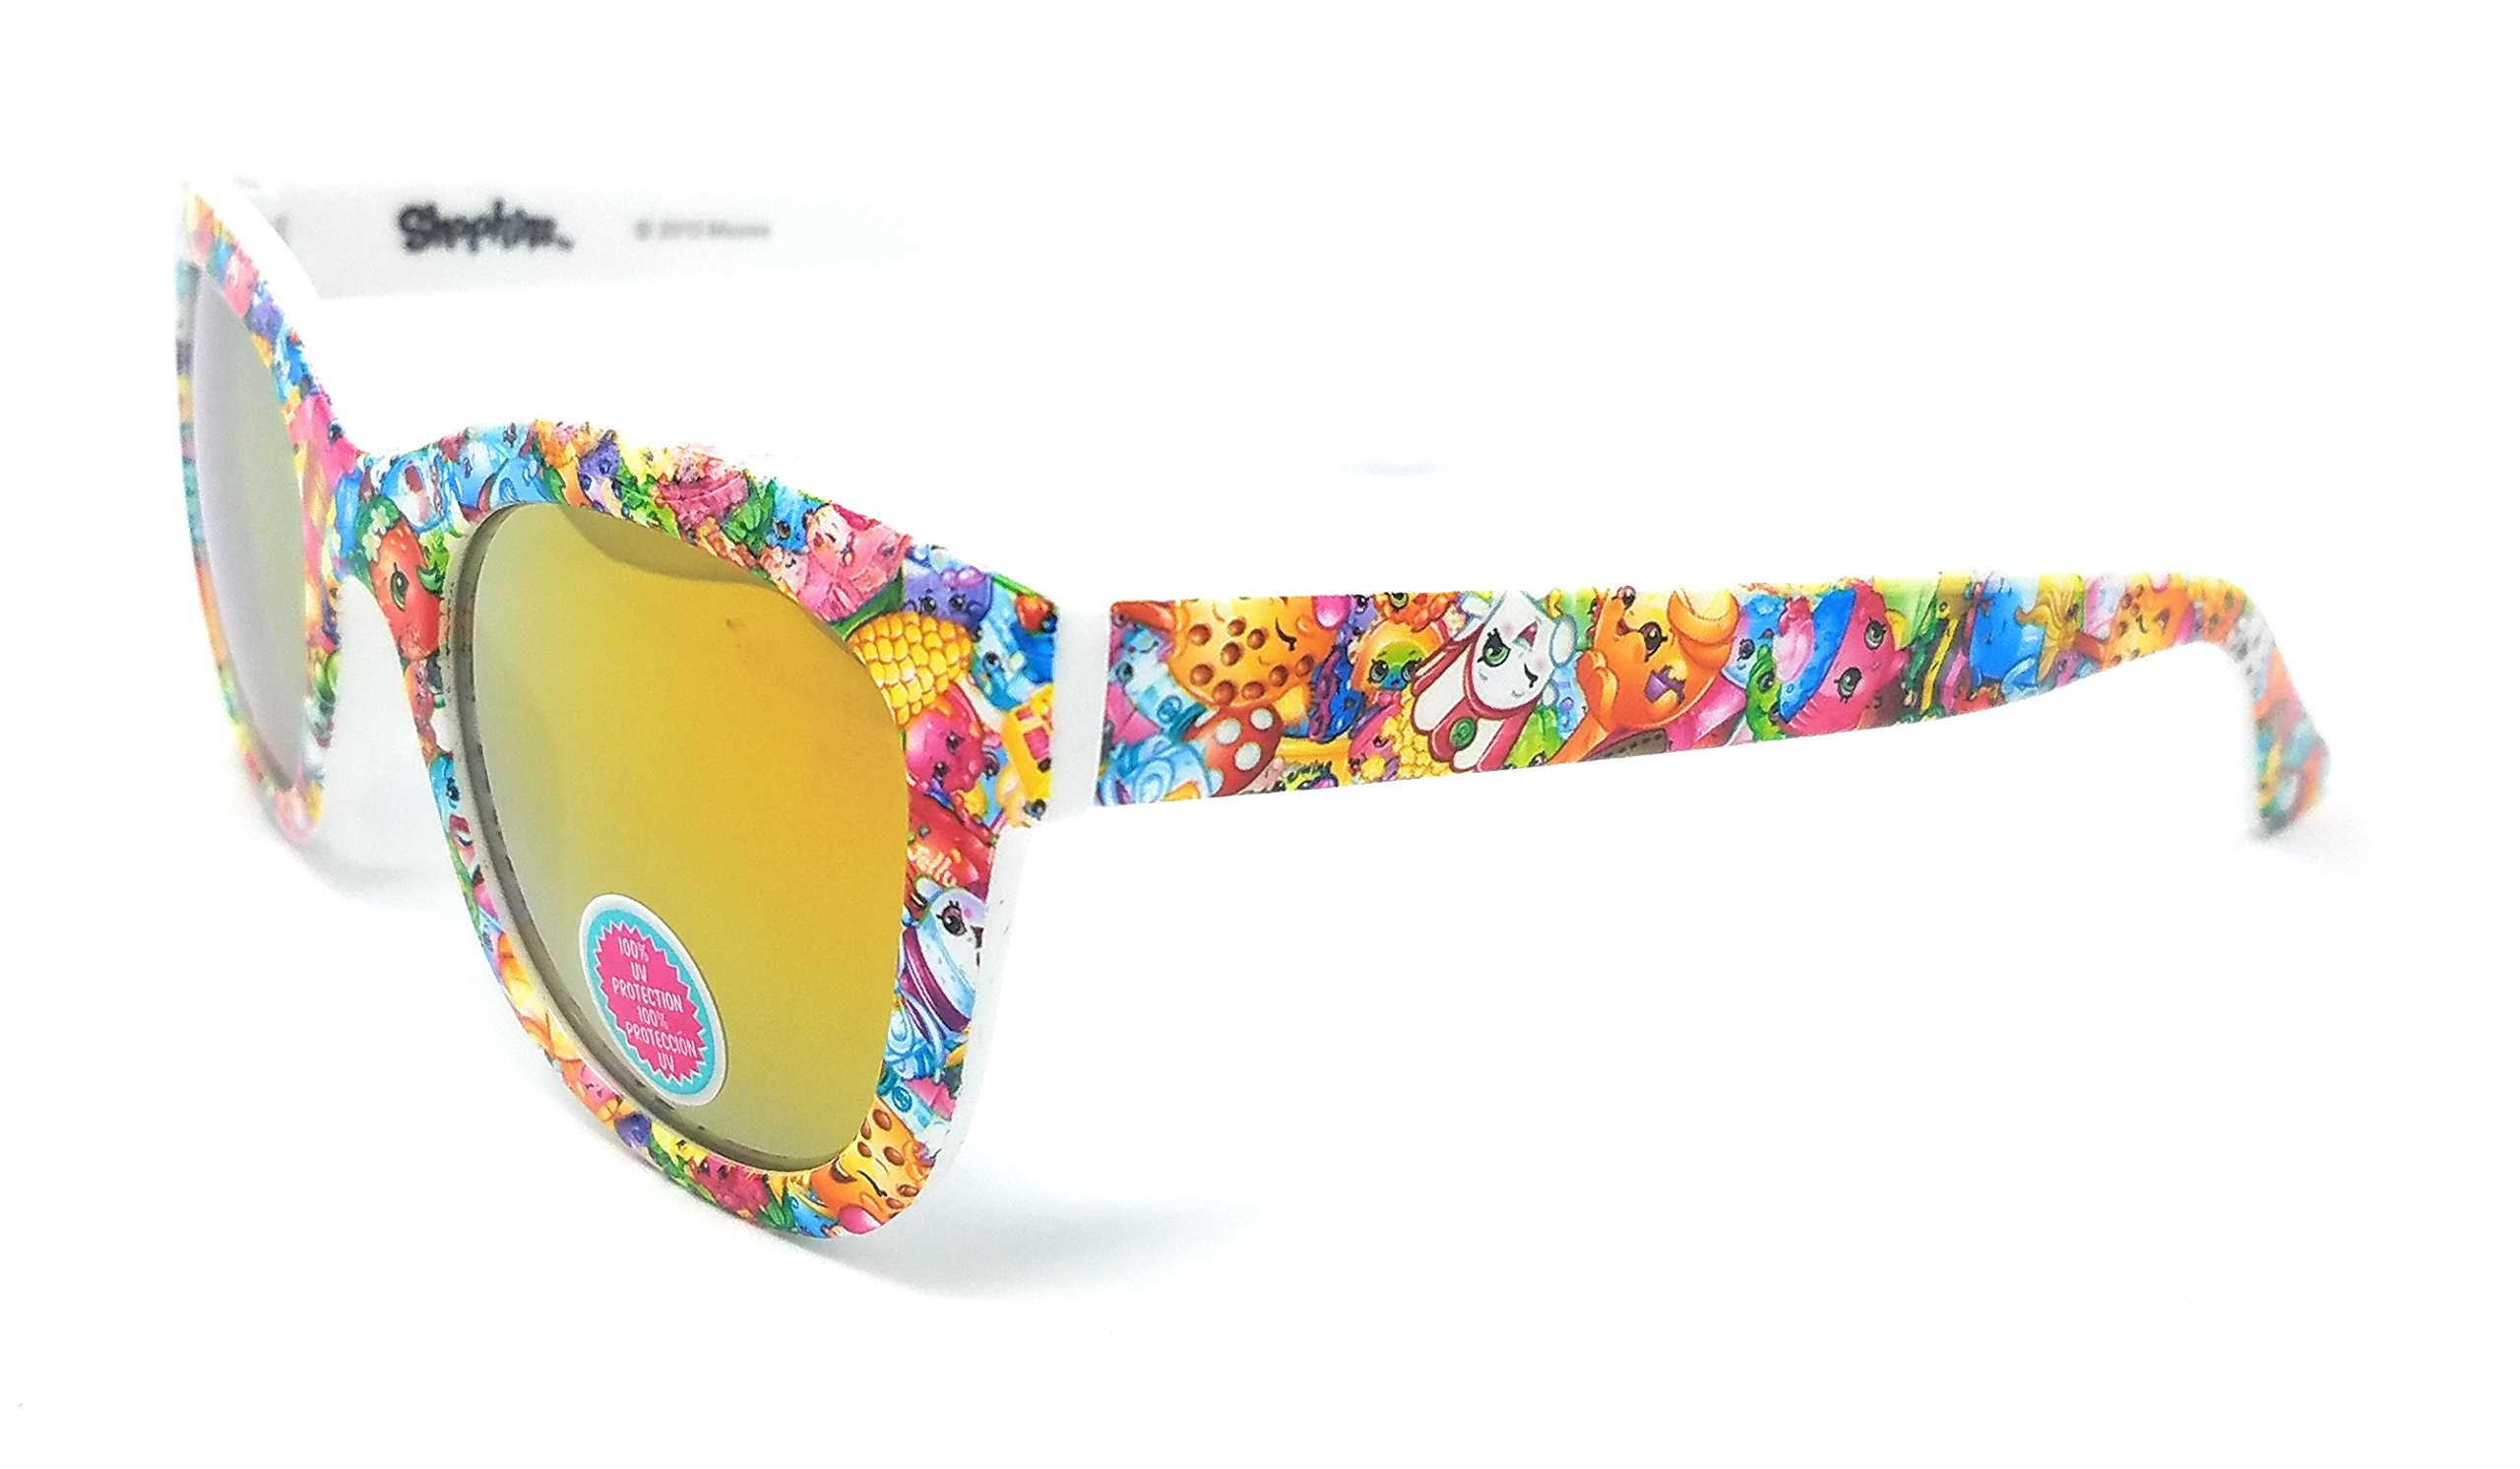 Shopkins Girl's Sunglasses in White with All Characters 100% UV Protection